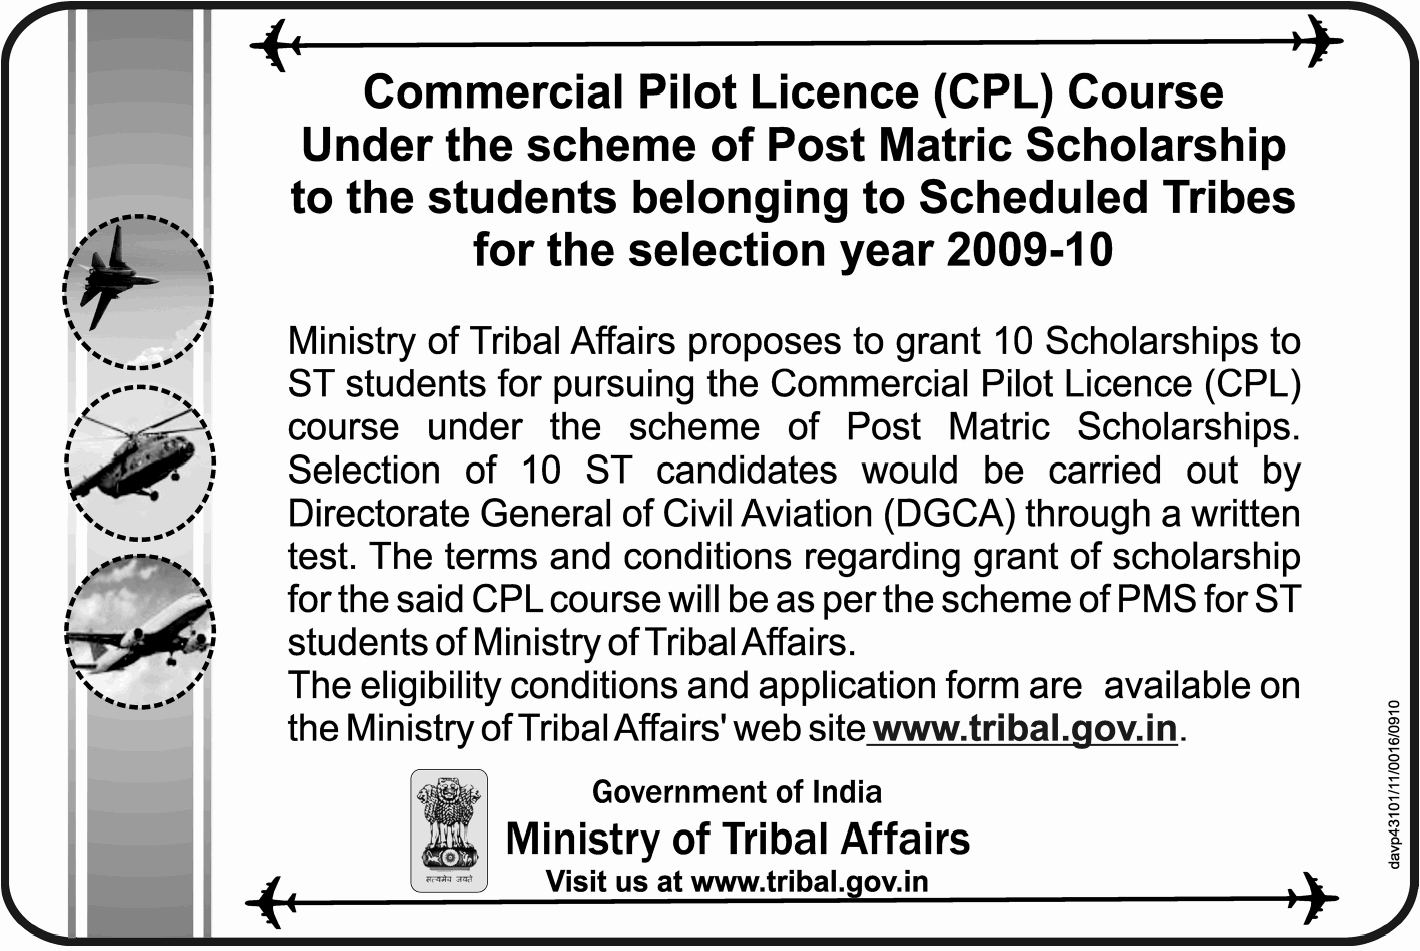 Post Matric Scholarship For Commercial Pilot Licence Course India